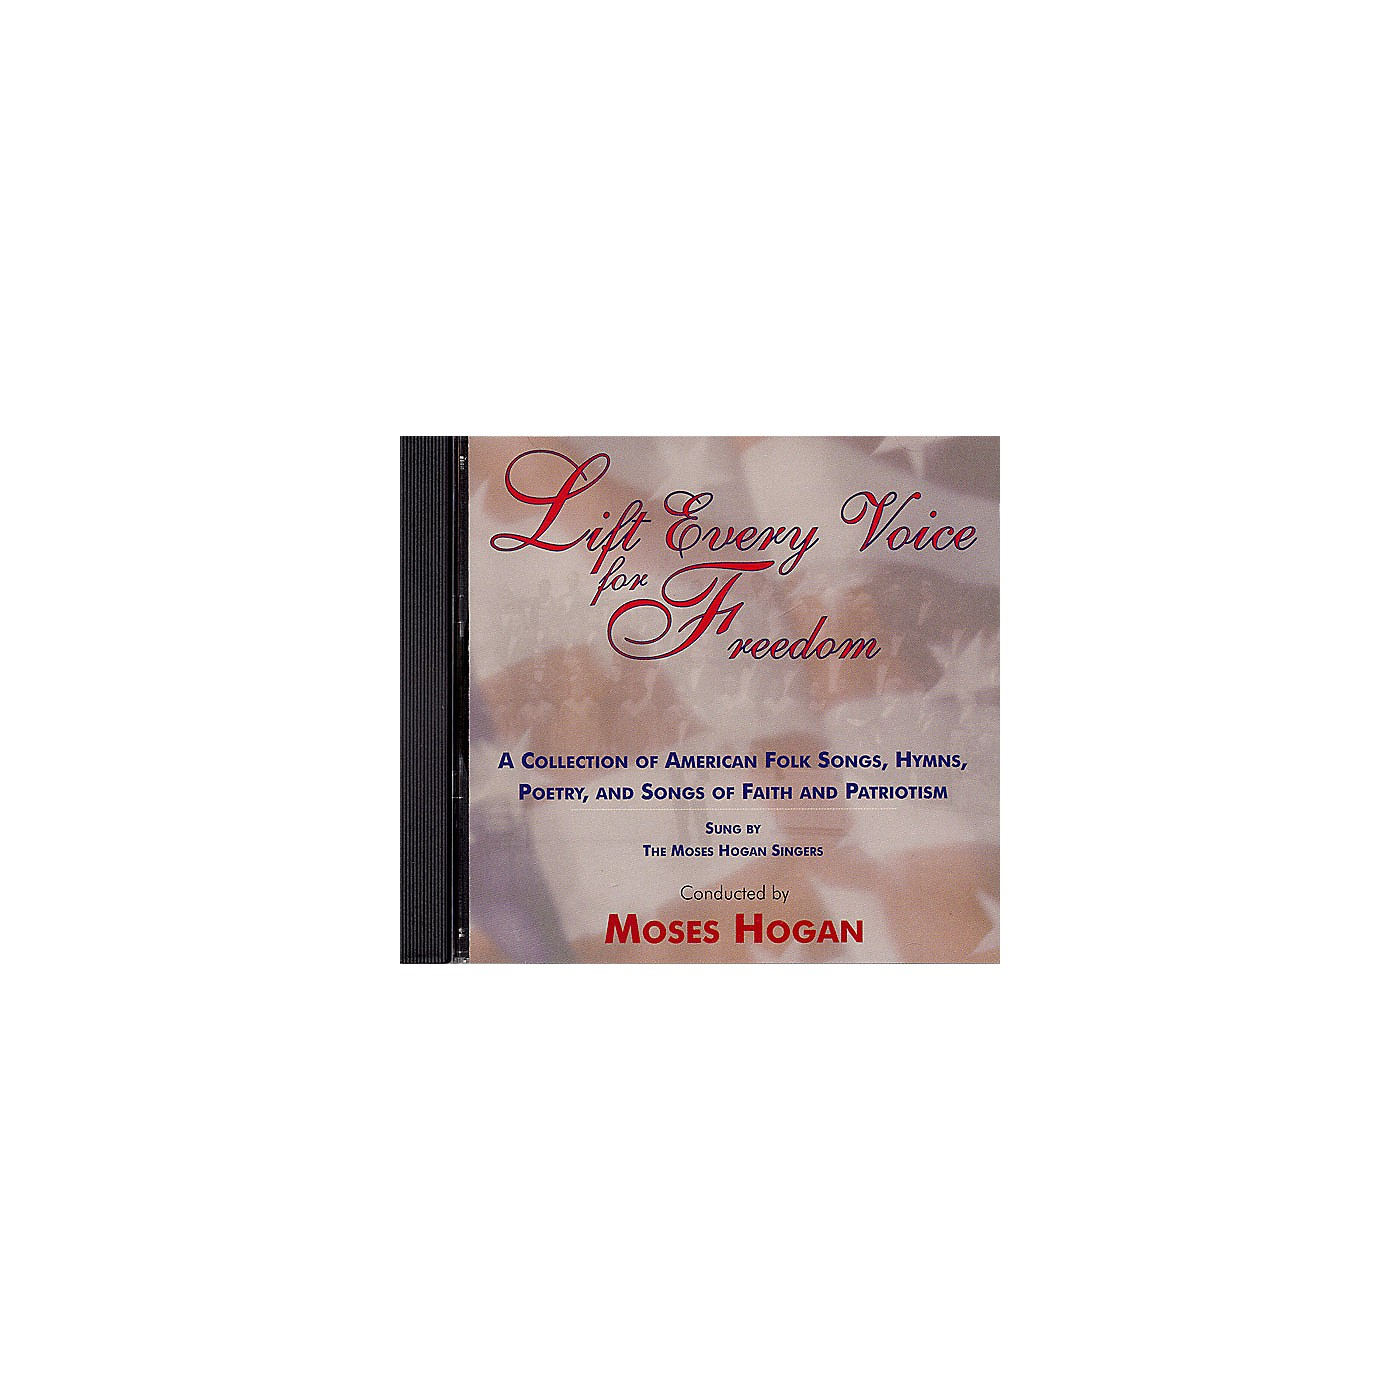 Hal Leonard Lift Every Voice for Freedom (CD) by The Moses Hogan Singers arranged by Moses Hogan thumbnail